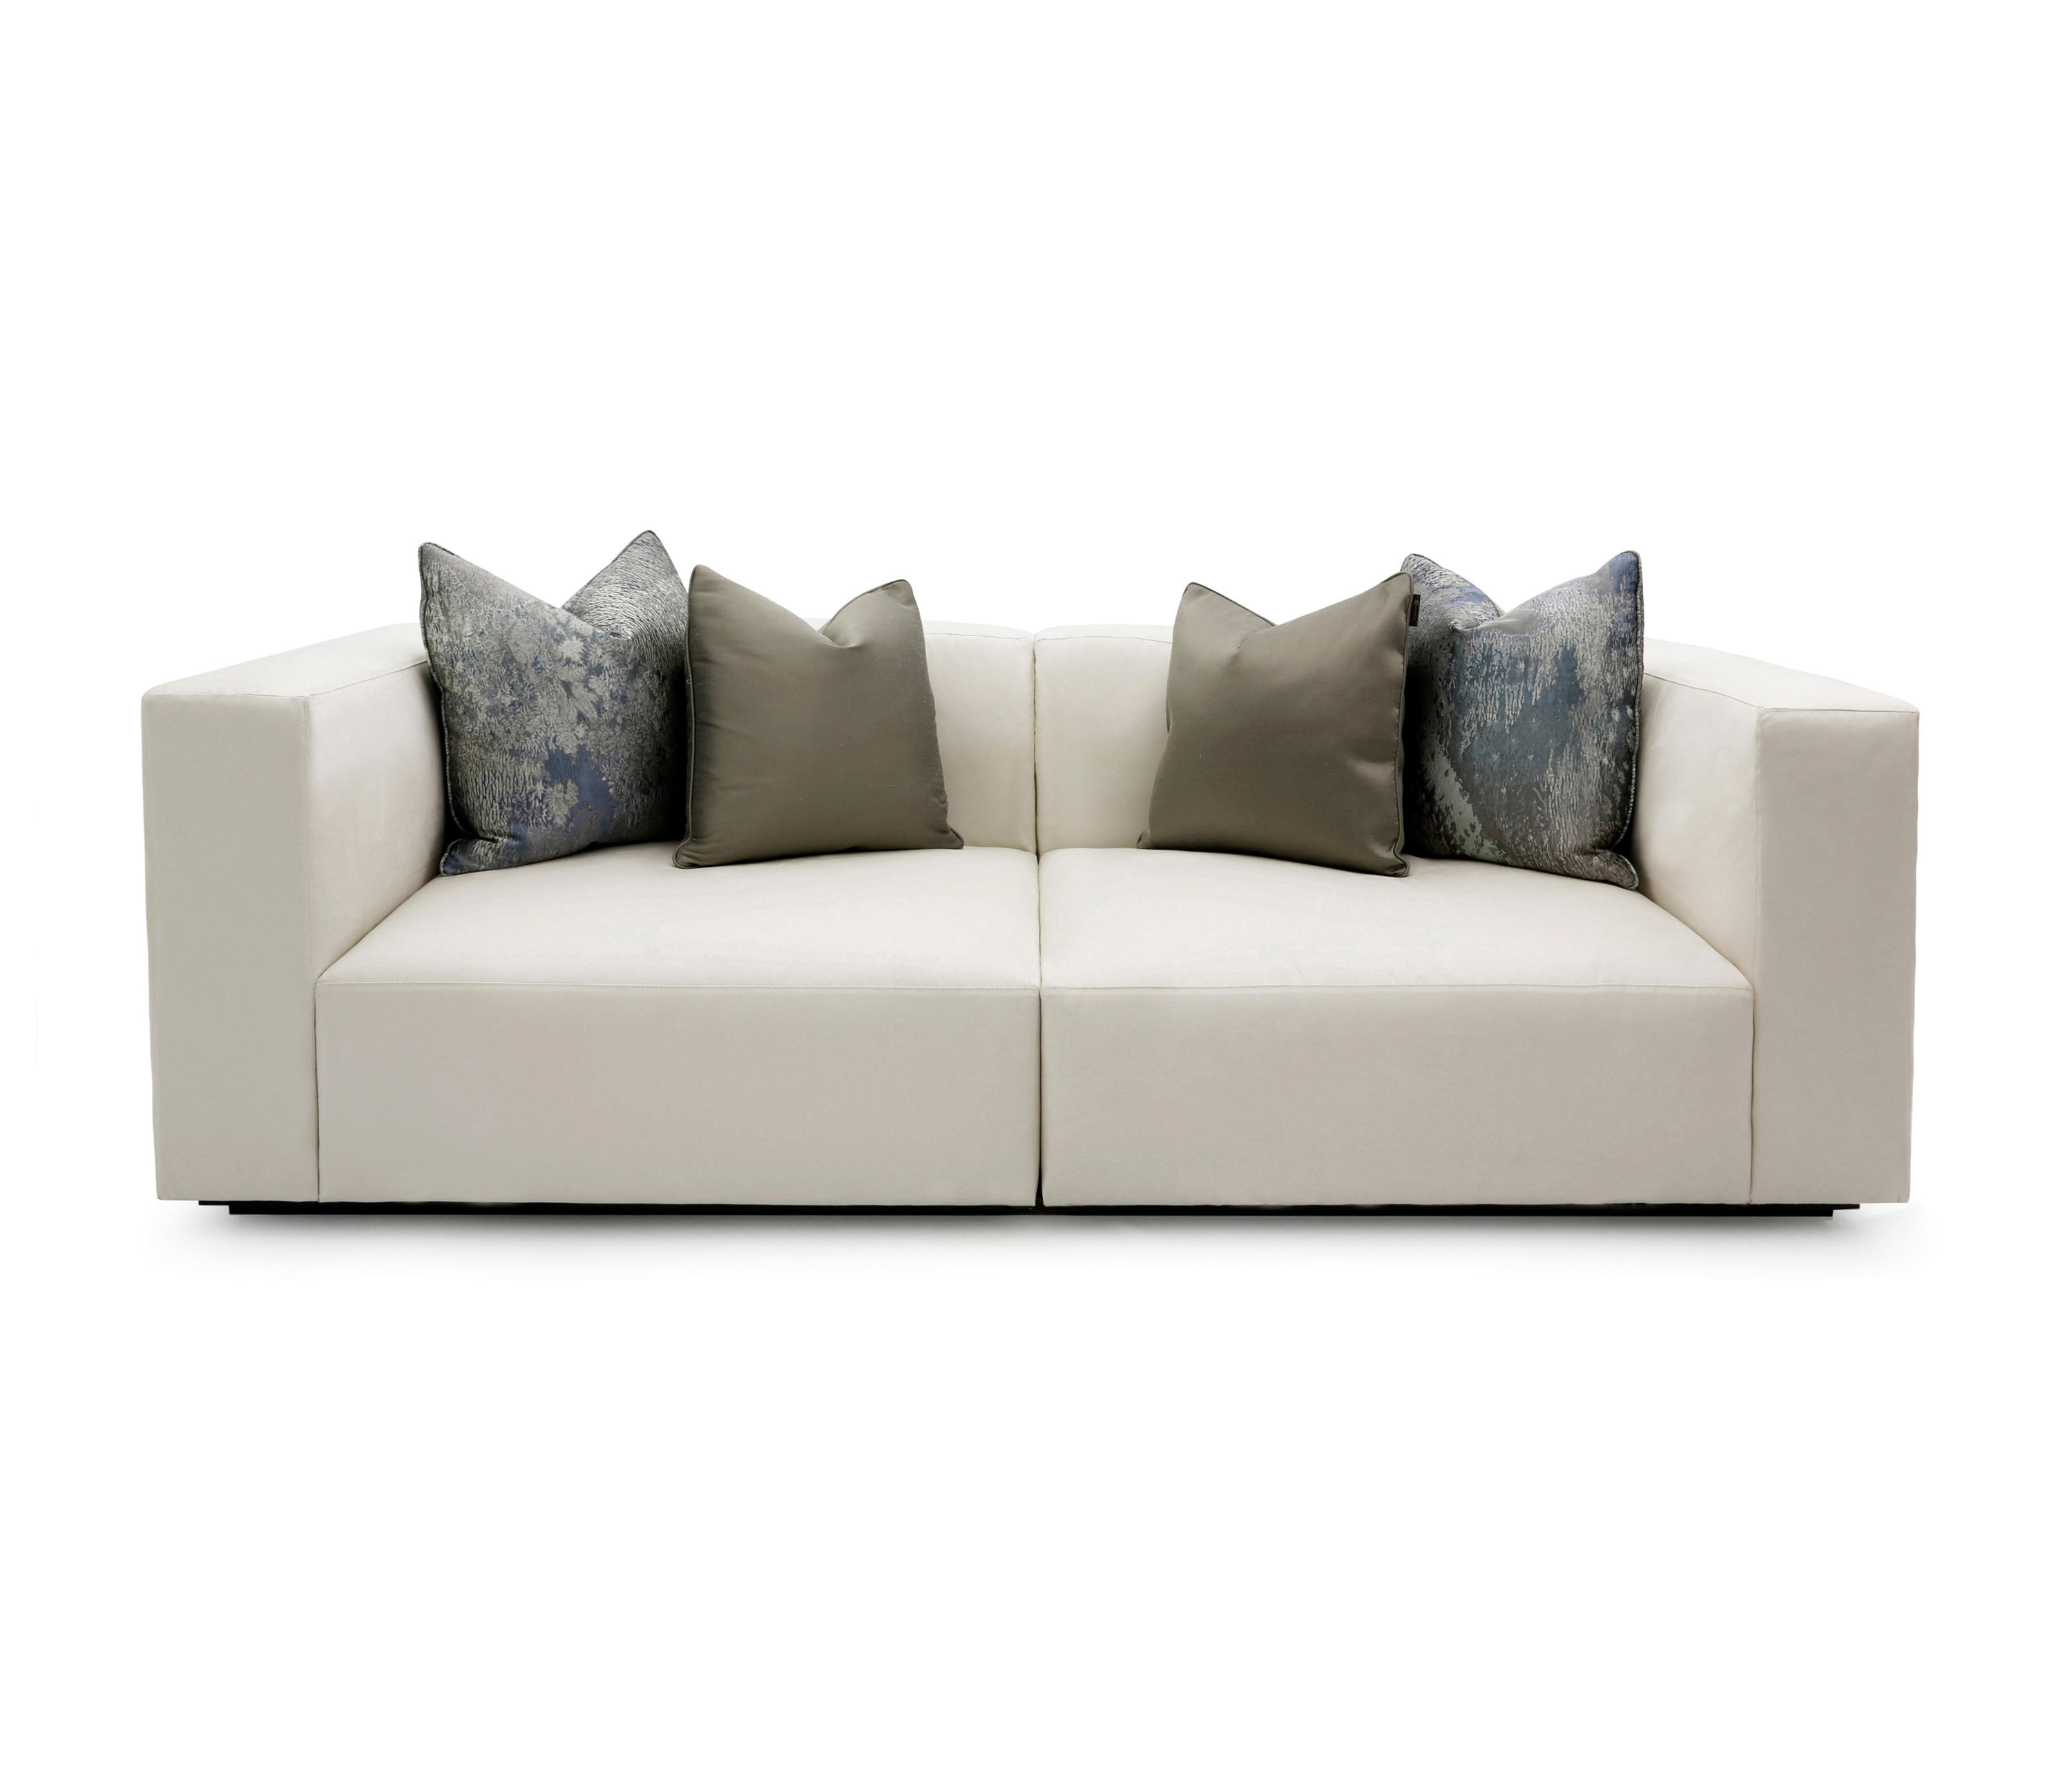 HAYWARD SOFA Lounge sofas from The Sofa & Chair pany Ltd